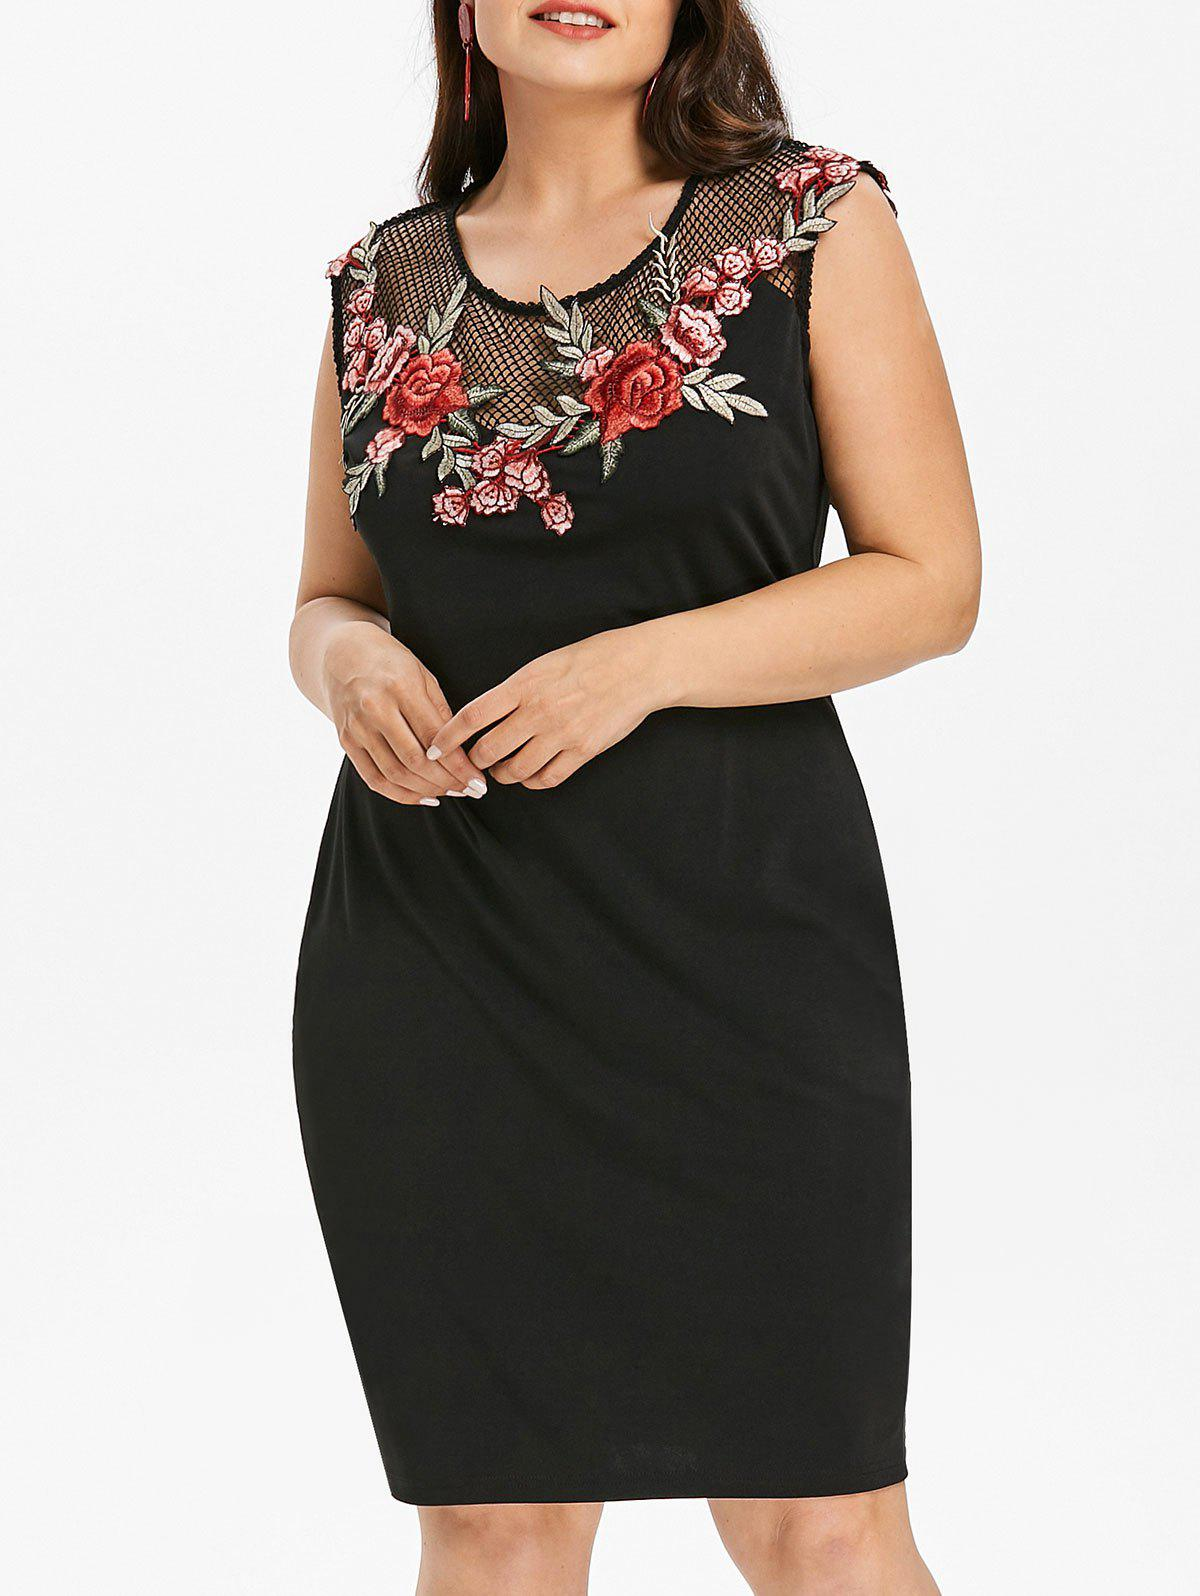 Plus Size Embroidery Sheer Sleeveless Dress - BLACK L